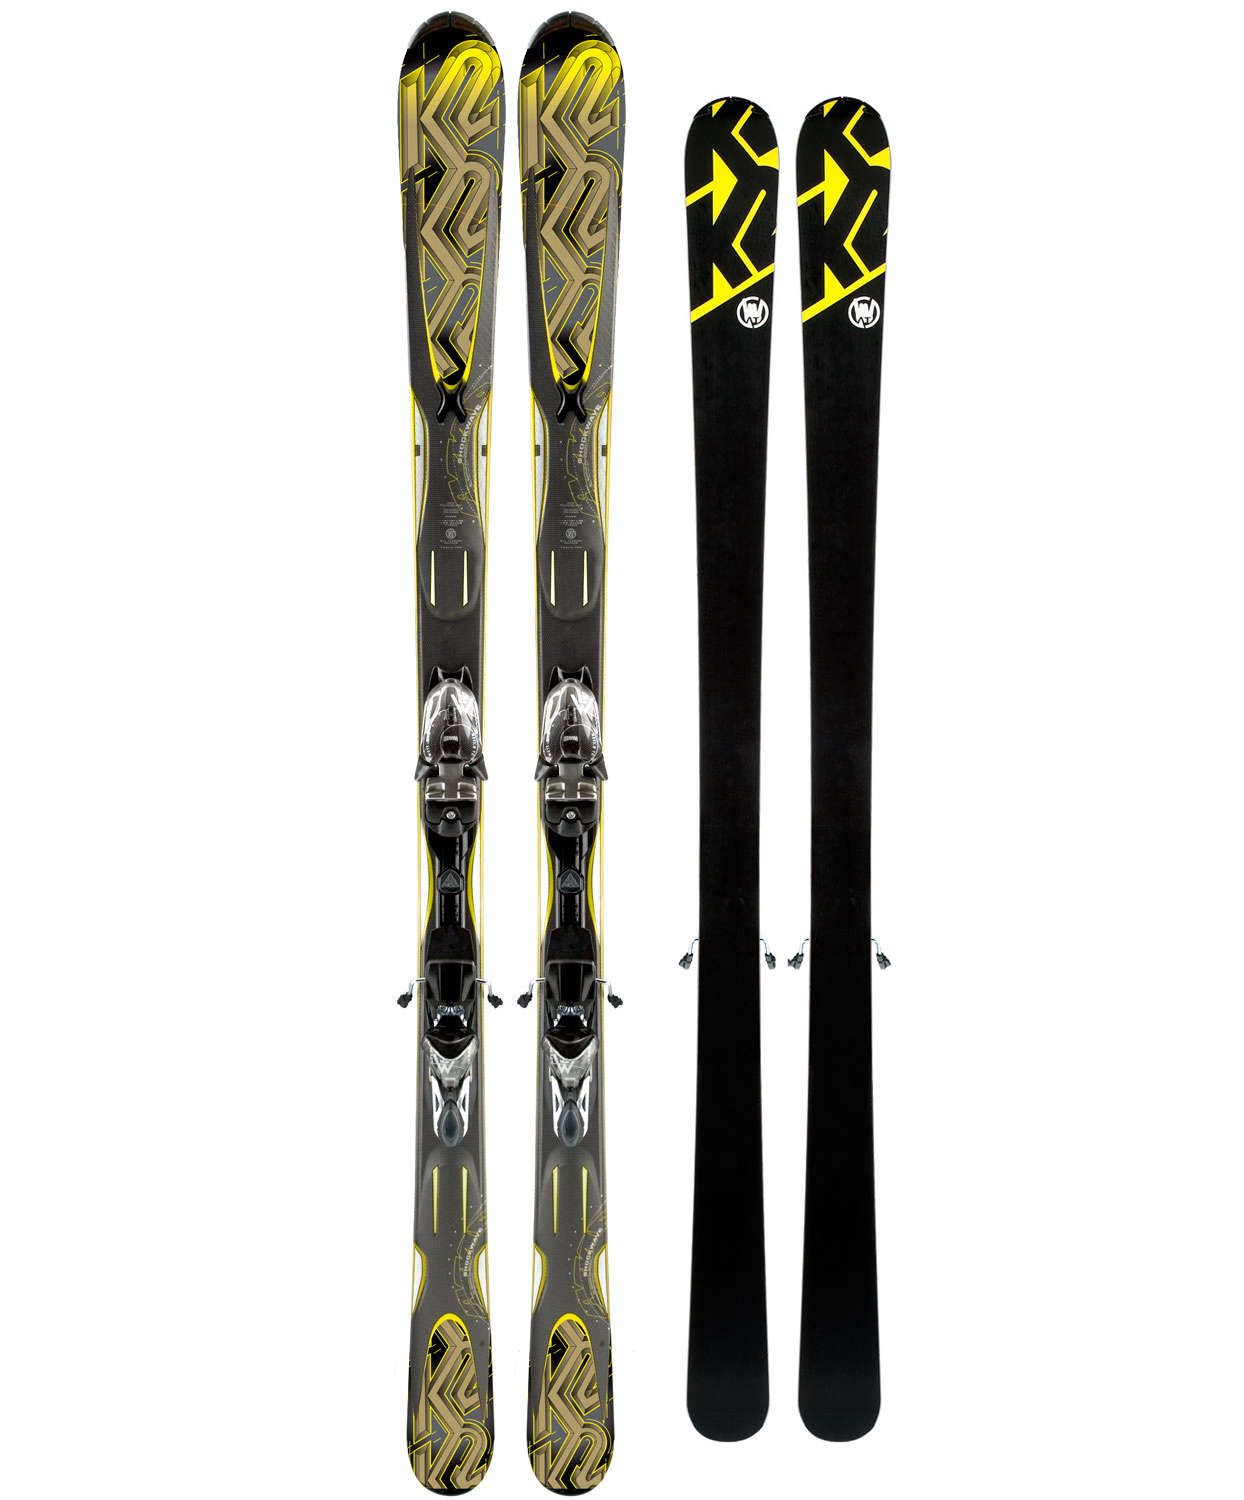 Ski Performance With PowerThe Shockwave offers a smooth blend of performance, forgiveness, and stability. This balance is achieved by combining a versatile 78mm waist width, moderate sidecut, and game changing All-Terrain rocker that helps initiate turns on hard snow and keeps the ski from deflecting in variable snow. The Shockwave will handle all conditions, especially excelling on groomers.Key Features of K2 Shockwave Skis w/ M2 11 TC Bindings: Performance: Groomed: 60% Ungroomed: 40% Radius: 18M@177 Baseline: All-Terrain Rocker - 70% Camber / 30% Rocker Construction: Torsion Box Cap Core: Fir/Aspen Binding Options: Marker K2/M2 11.0 TC - $595.95